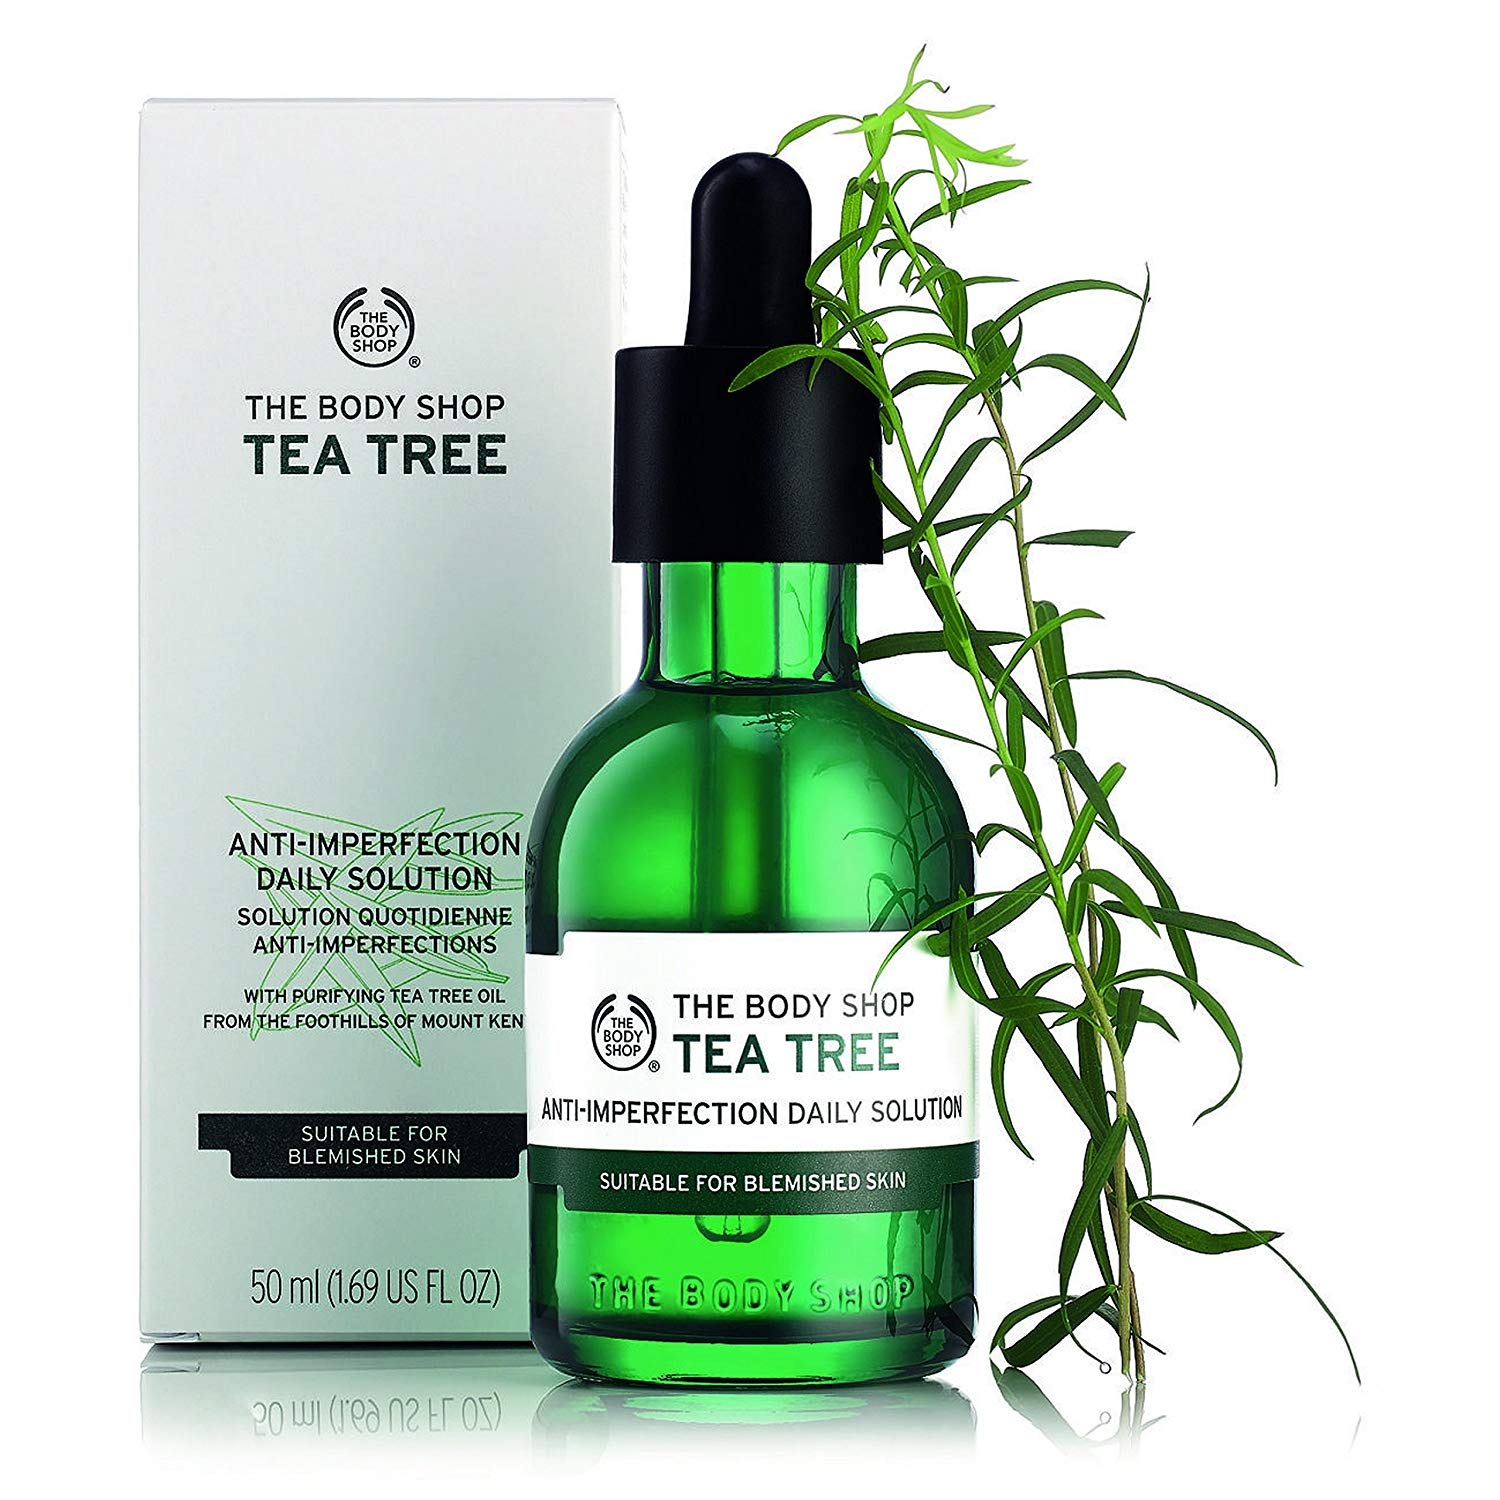 Serum Tea Tree Anti Imperfection Daily Solution